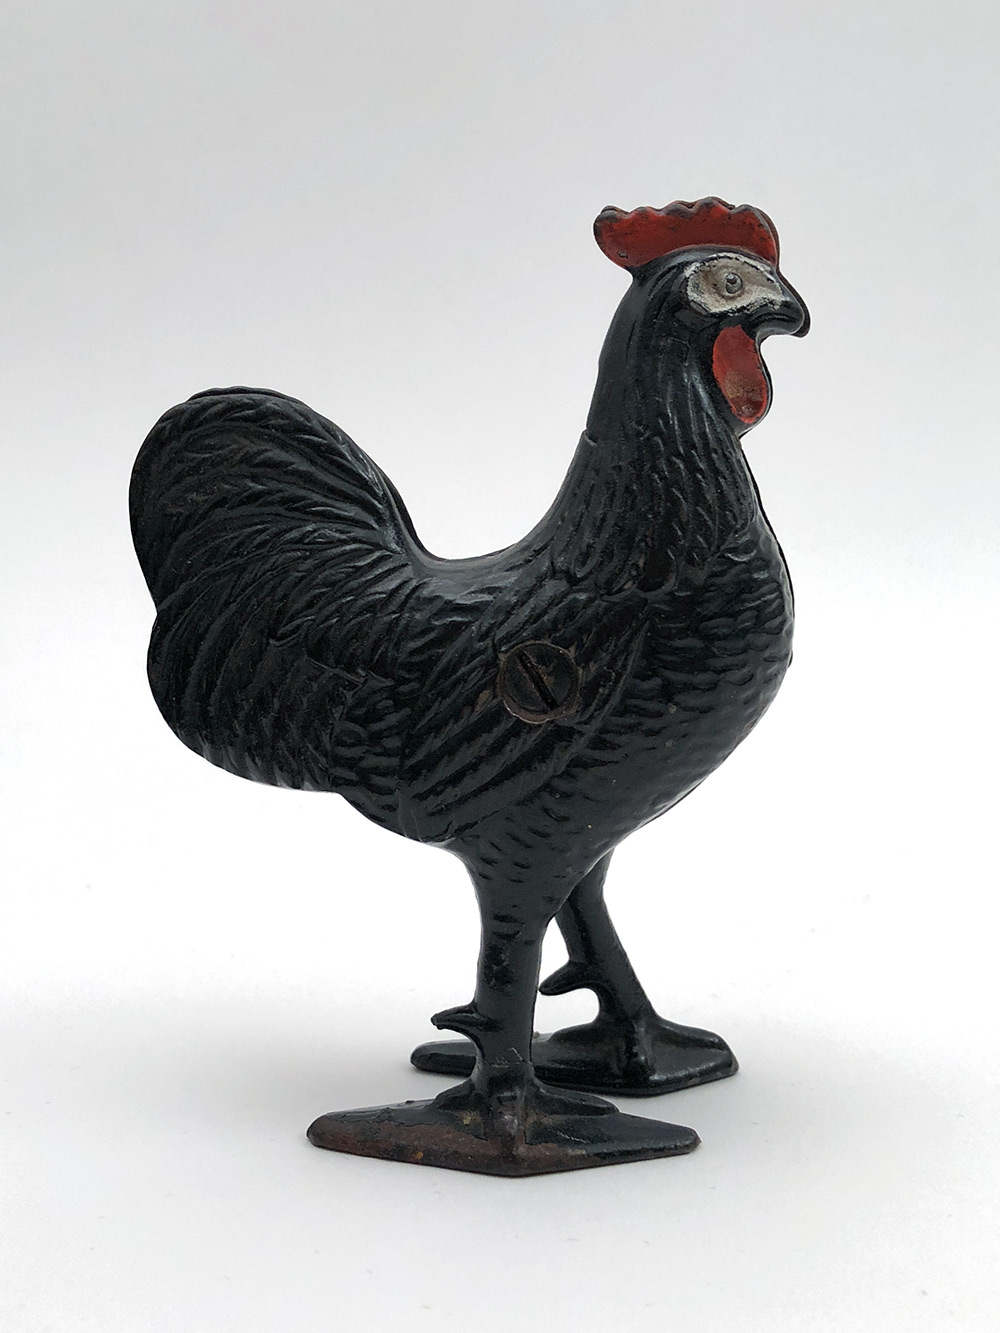 Original Cast Iron Rooster Penny Bank For Sale